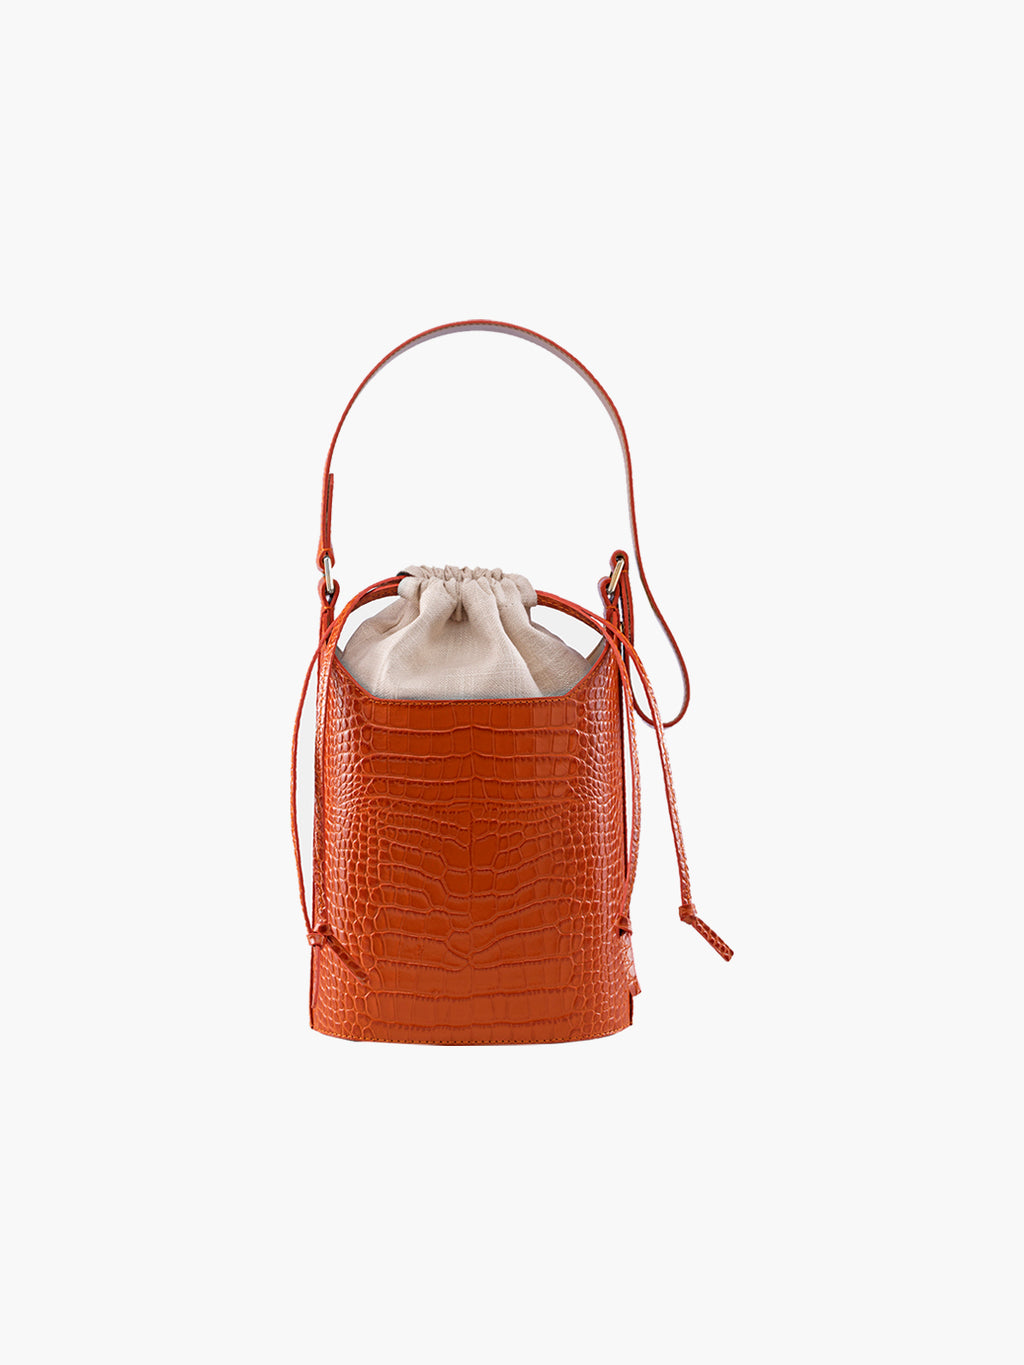 Xintra Bag | Croc Orange